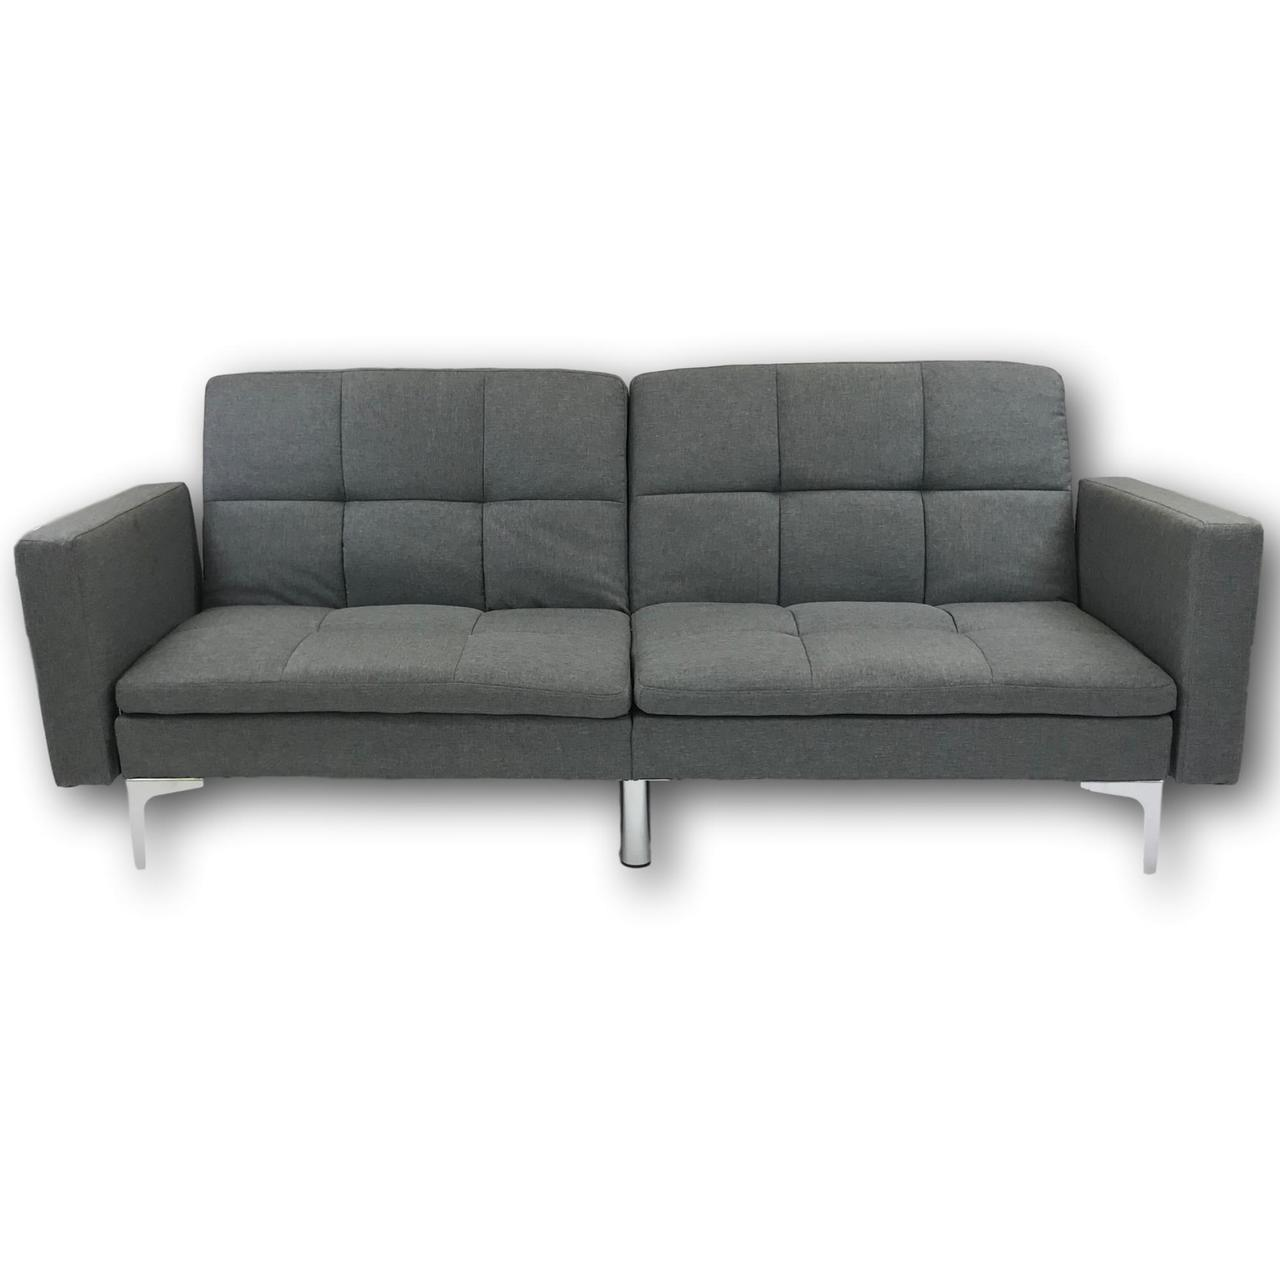 corner sofa bed west london beds clearance futons walmart canada